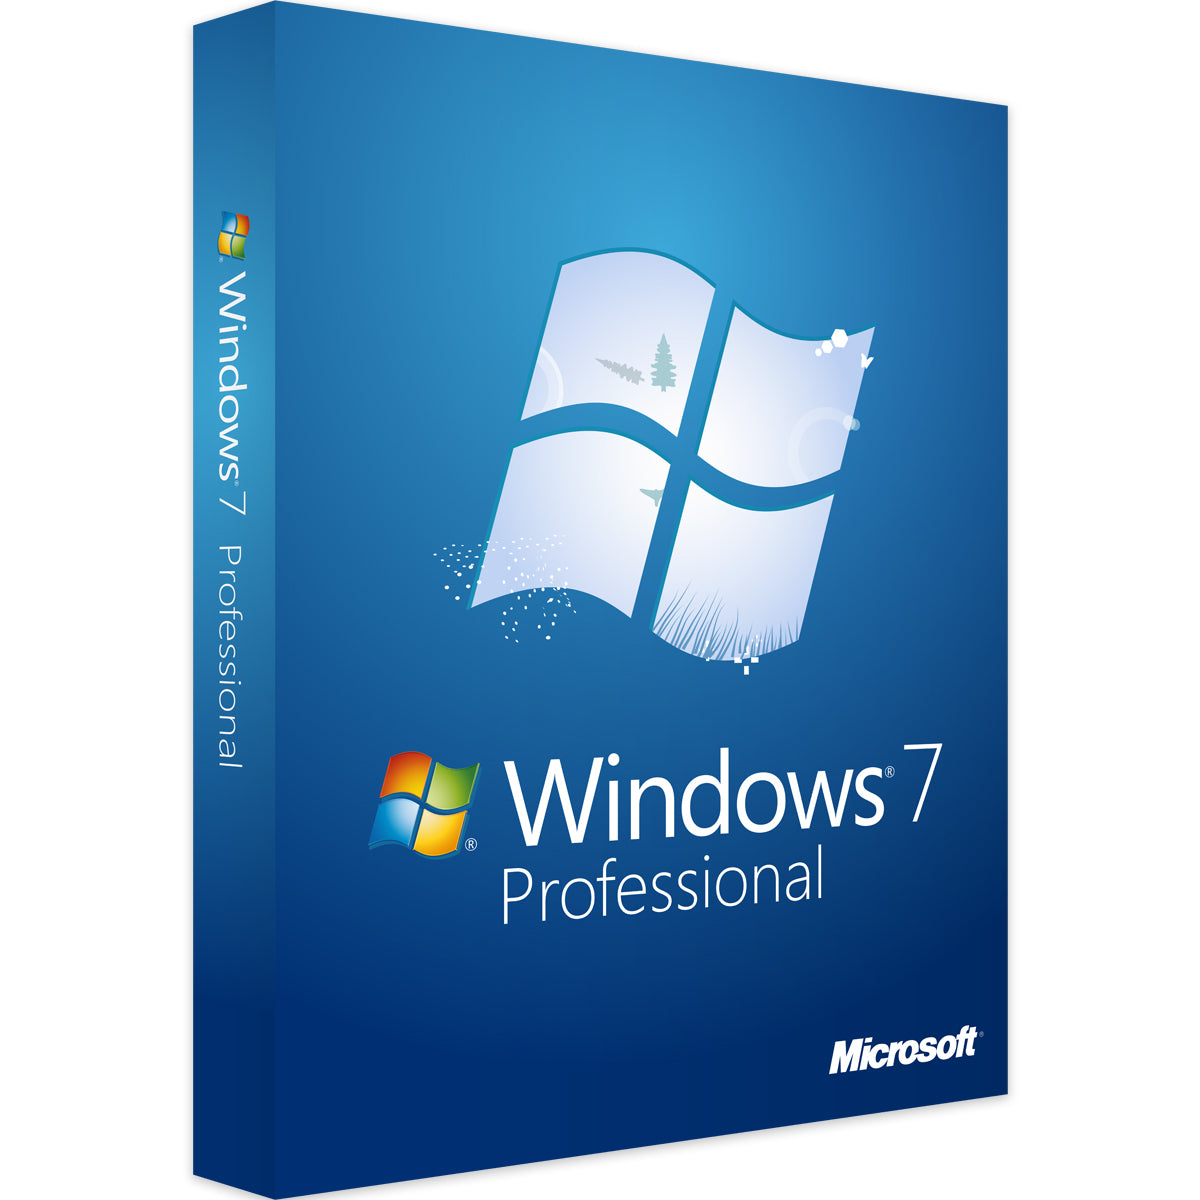 Microsoft Windows 7 Professional - Software-Markt data-zoom=